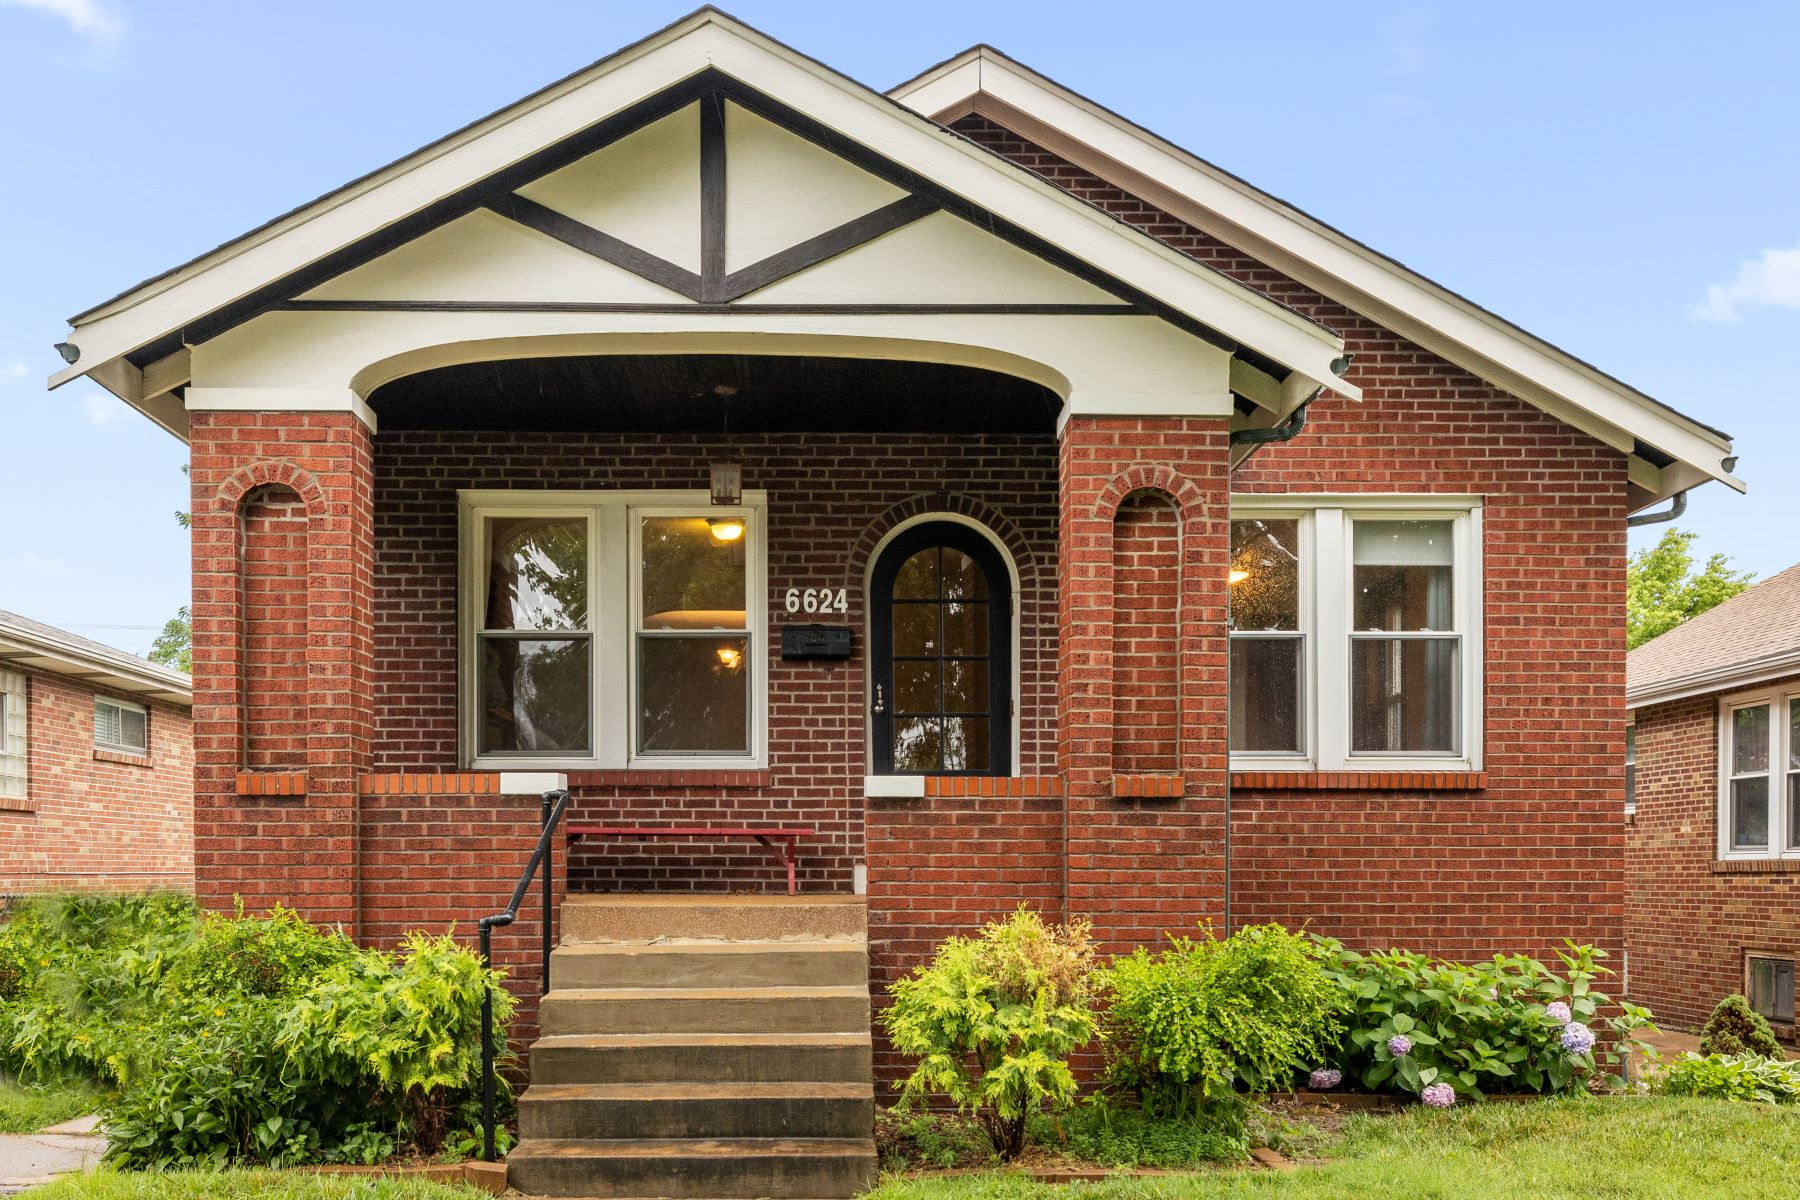 Single Family Homes for Sale at Clifton Heights Charmer 6624 Marmaduke Avenue St. Louis, Missouri 63139 United States